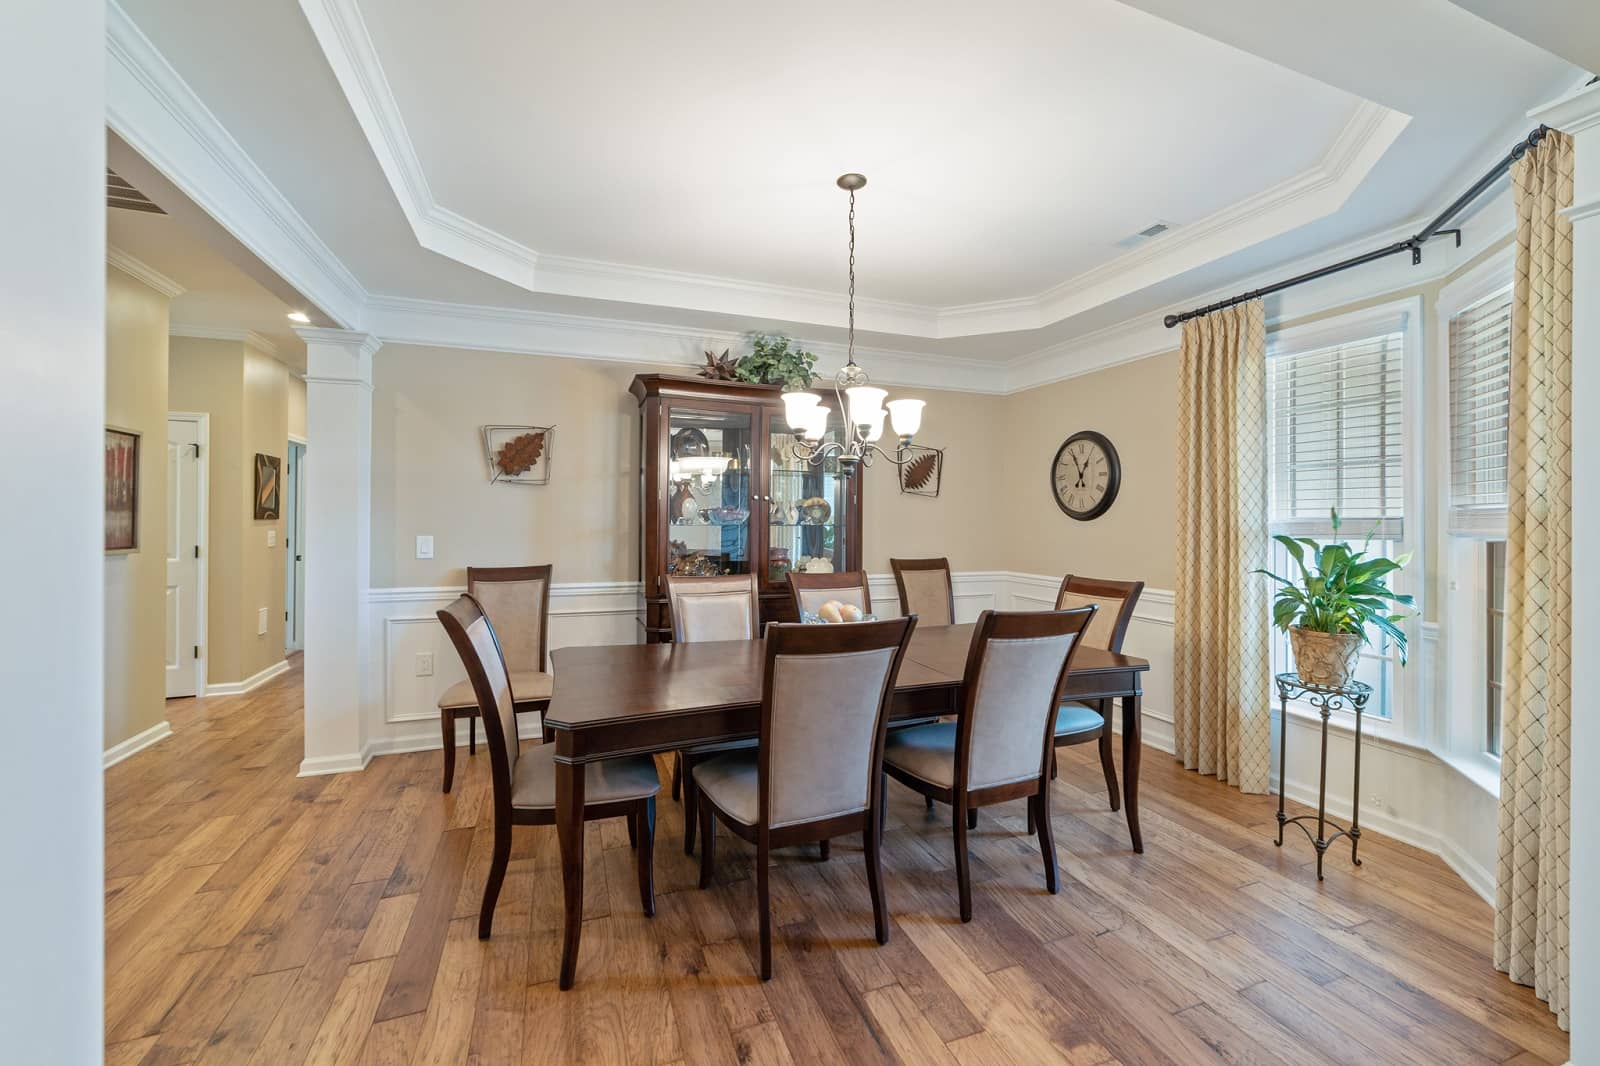 Real Estate Photography in Durham - NC - USA - Dining Area View